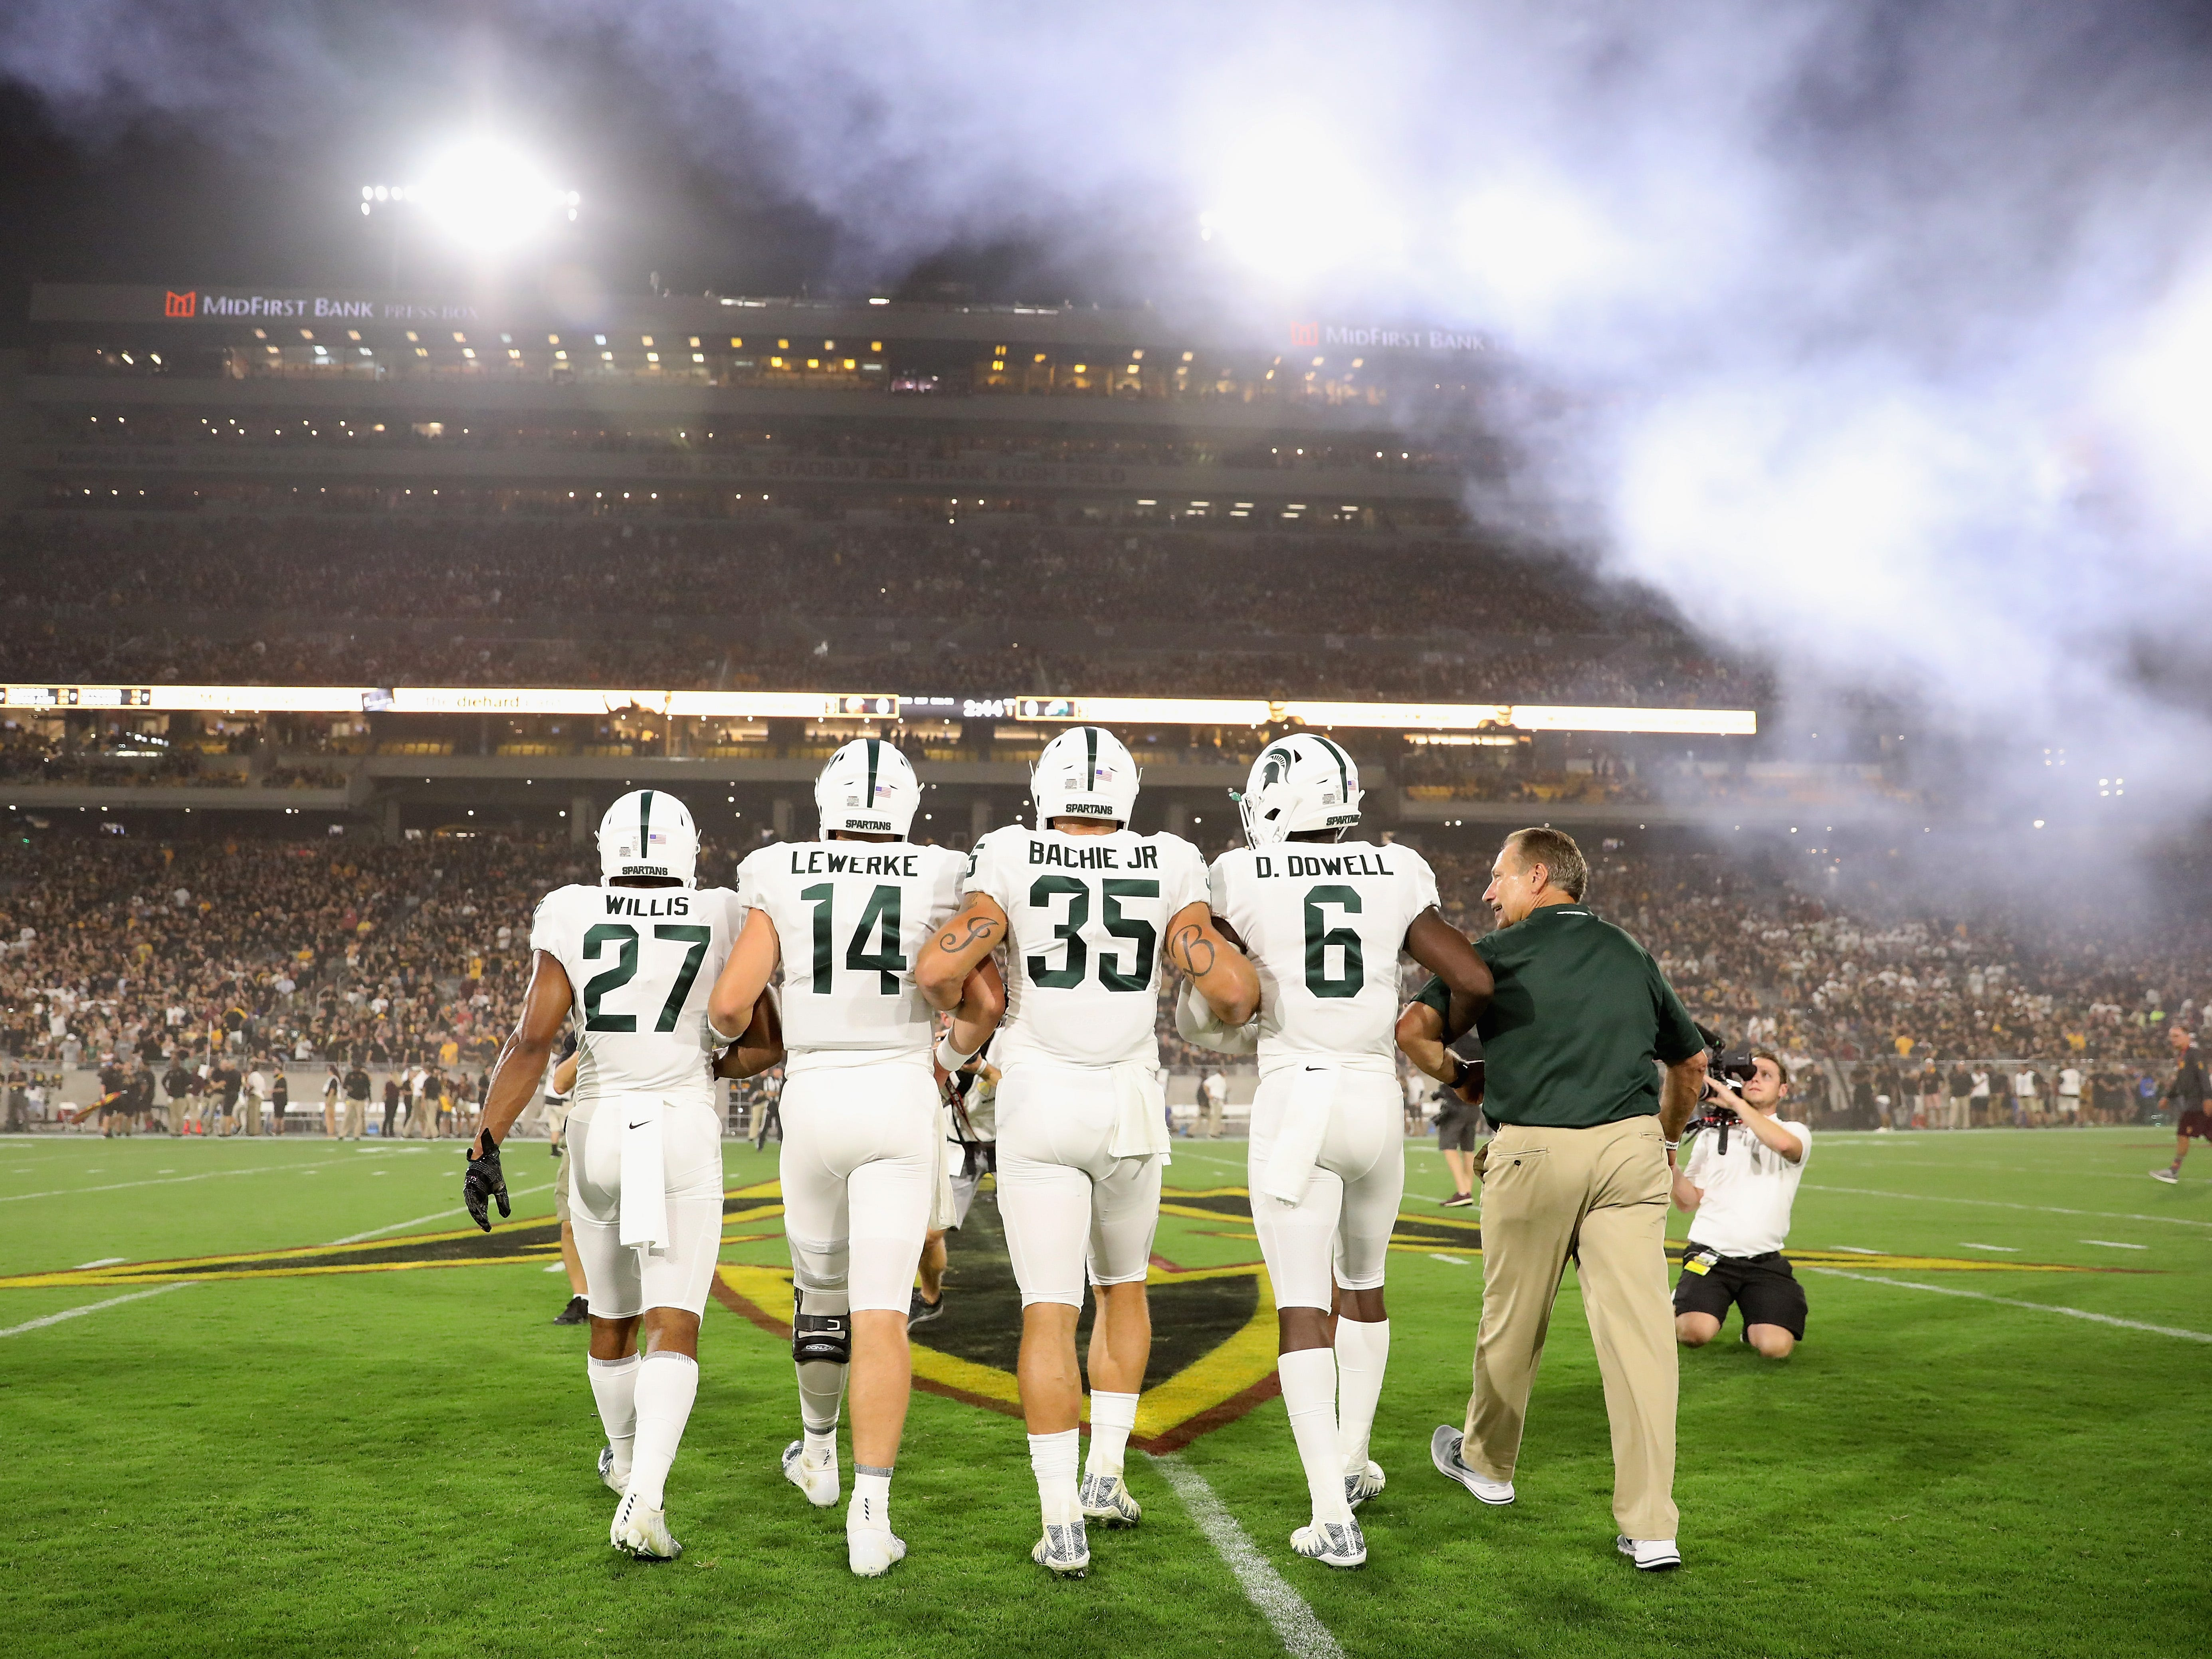 (L-R) Khari Willis #27, Brian Lewerke #14, Joe Bachie #35, David Dowell #6 and basketball head coach Mike Izzo of the Michigan State Spartans walk out to mid field for the coin toss to the college football game against the Arizona State Sun Devils at Sun Devil Stadium on September 8, 2018 in Tempe, Arizona.